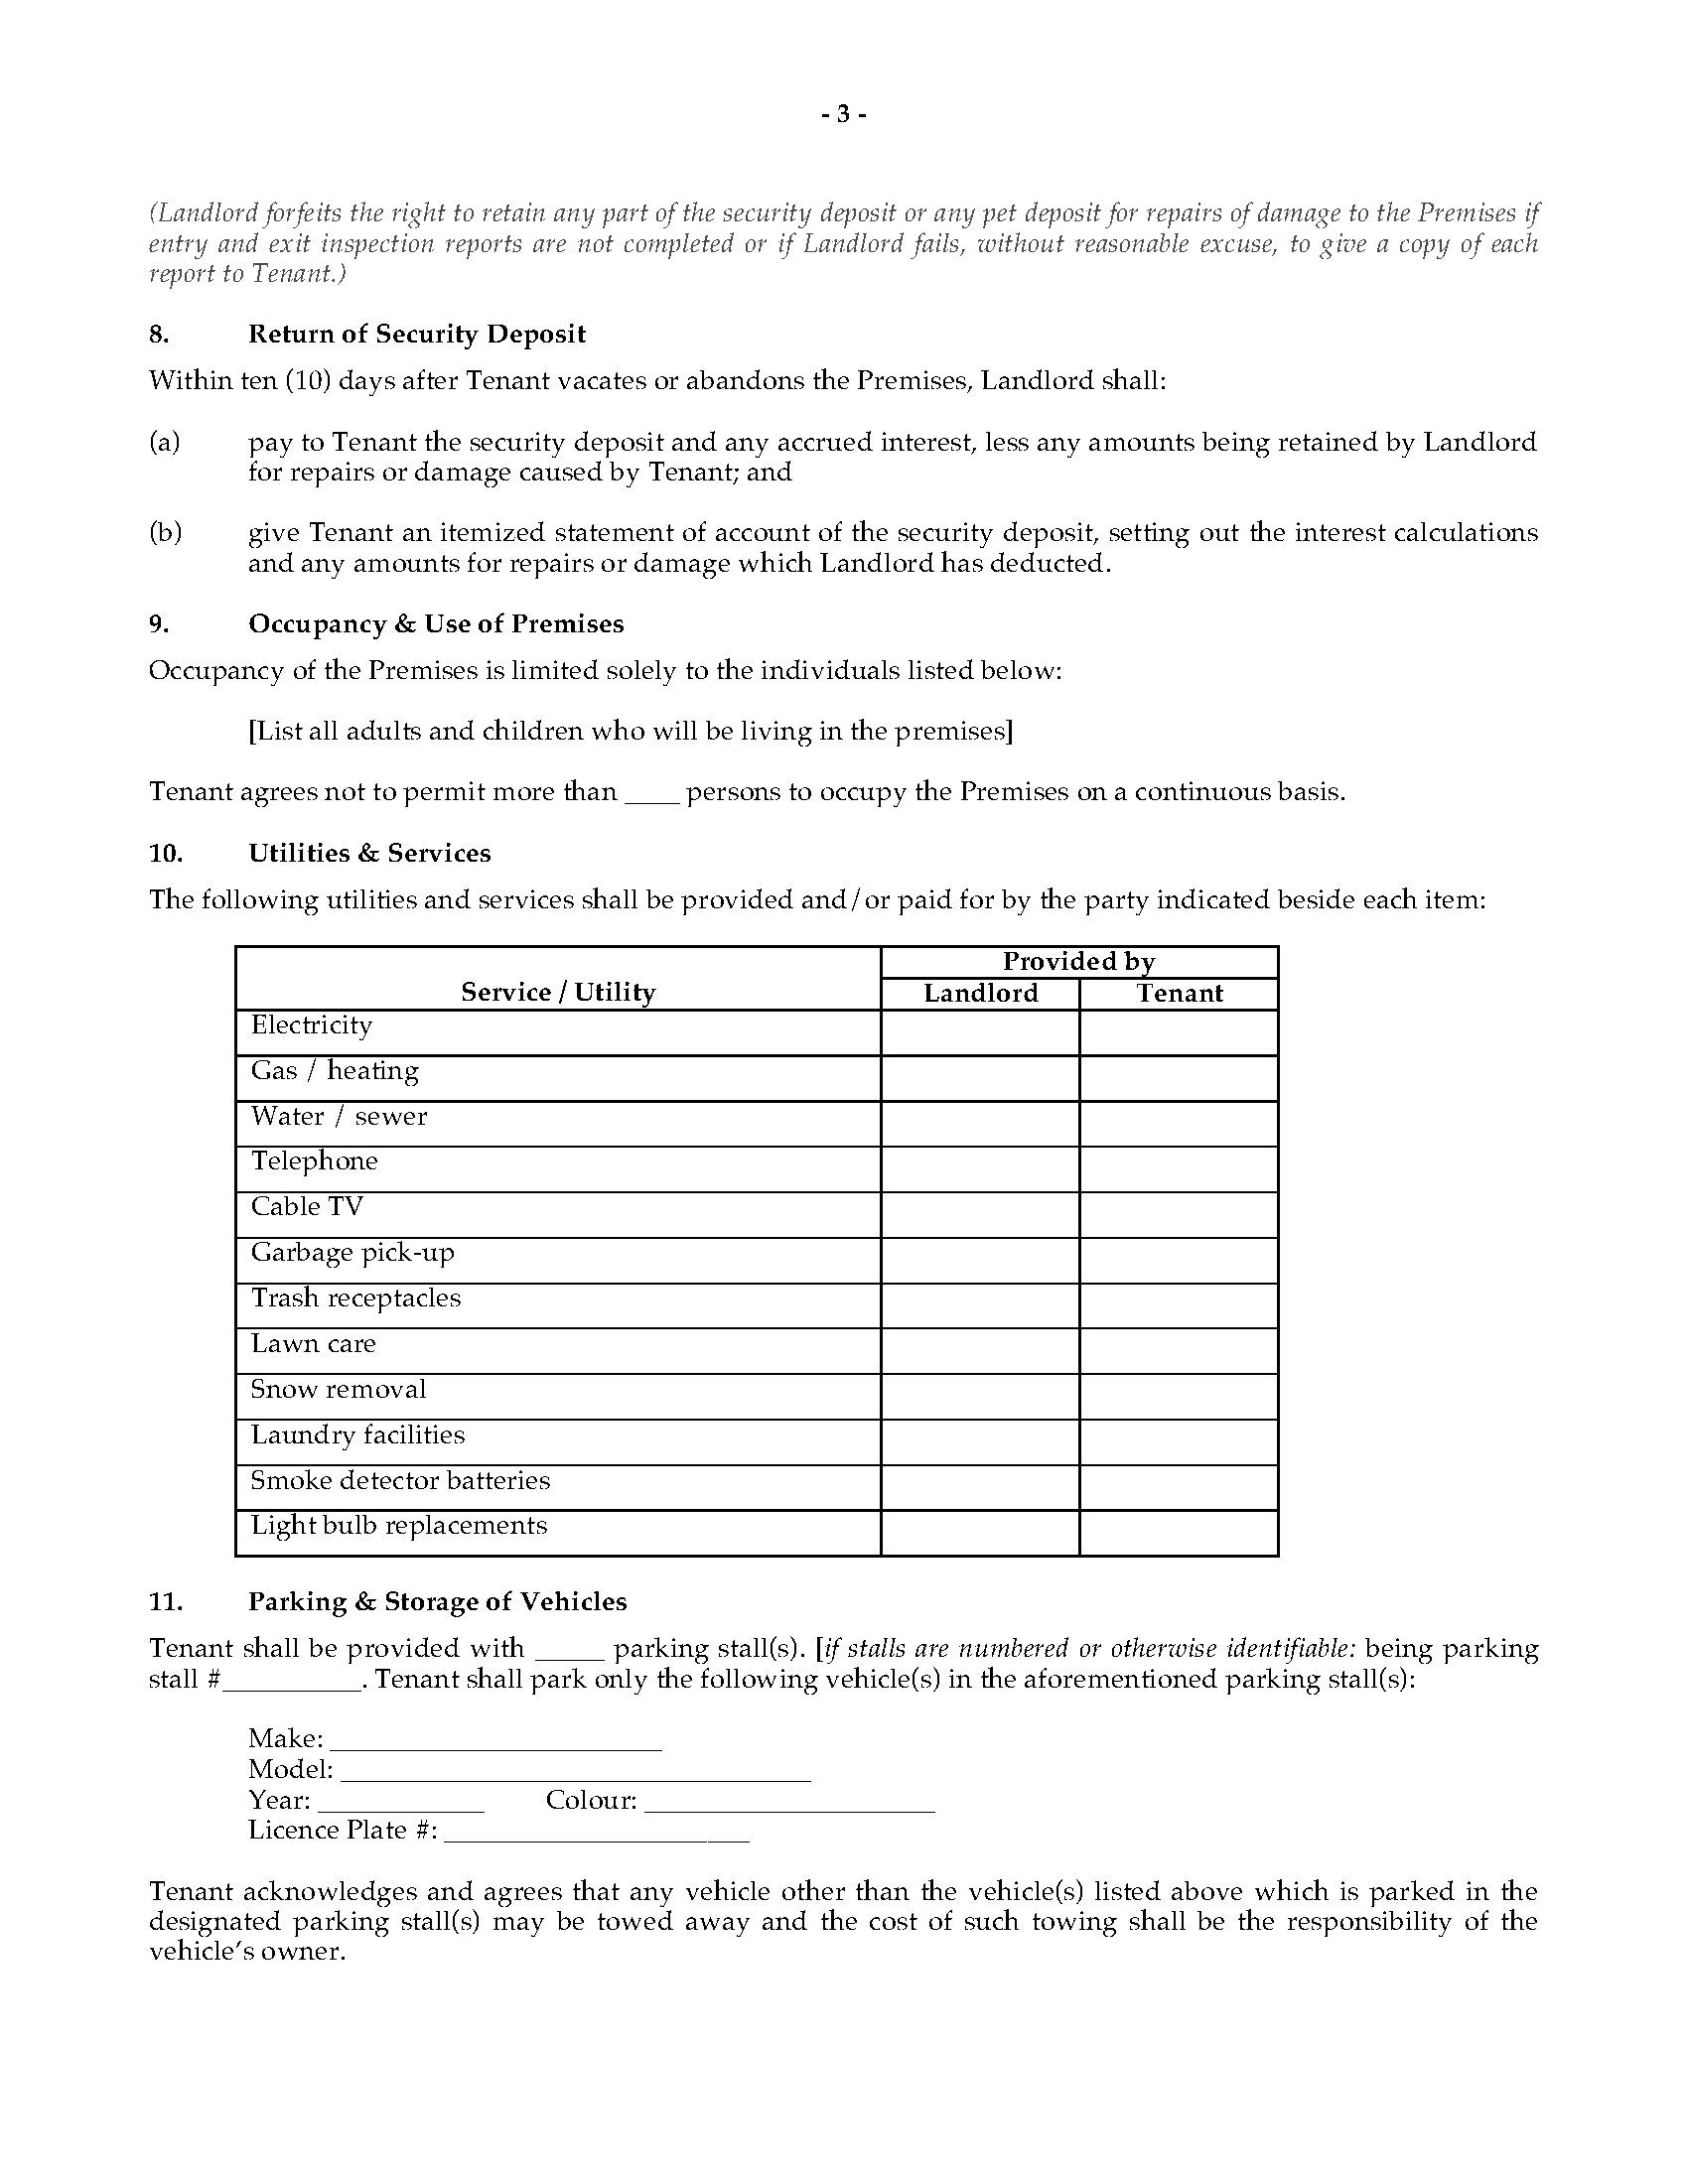 Nwt Residential Tenancy Agreement Legal Forms And